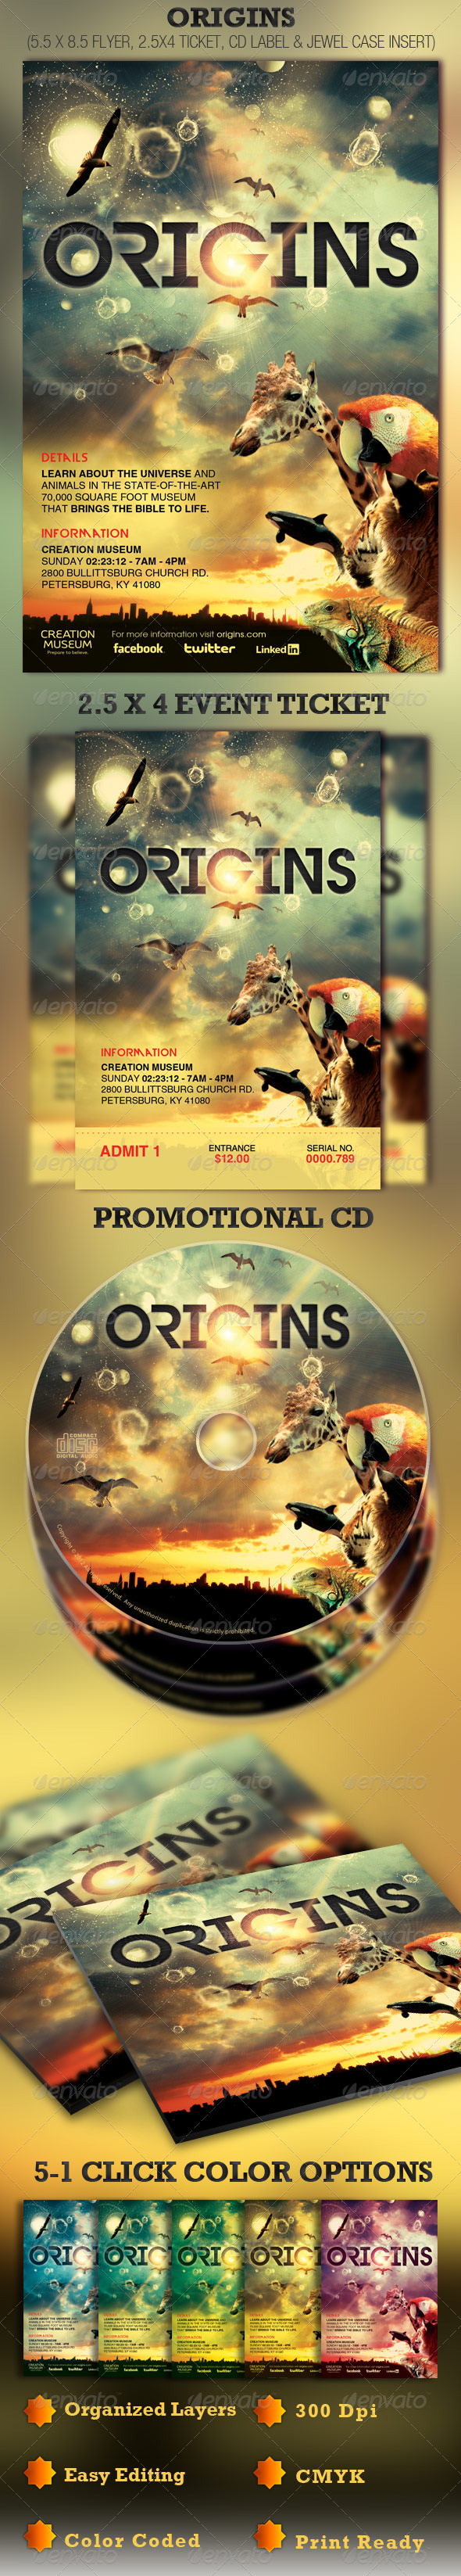 Origins Flyer Ticket and CD Template